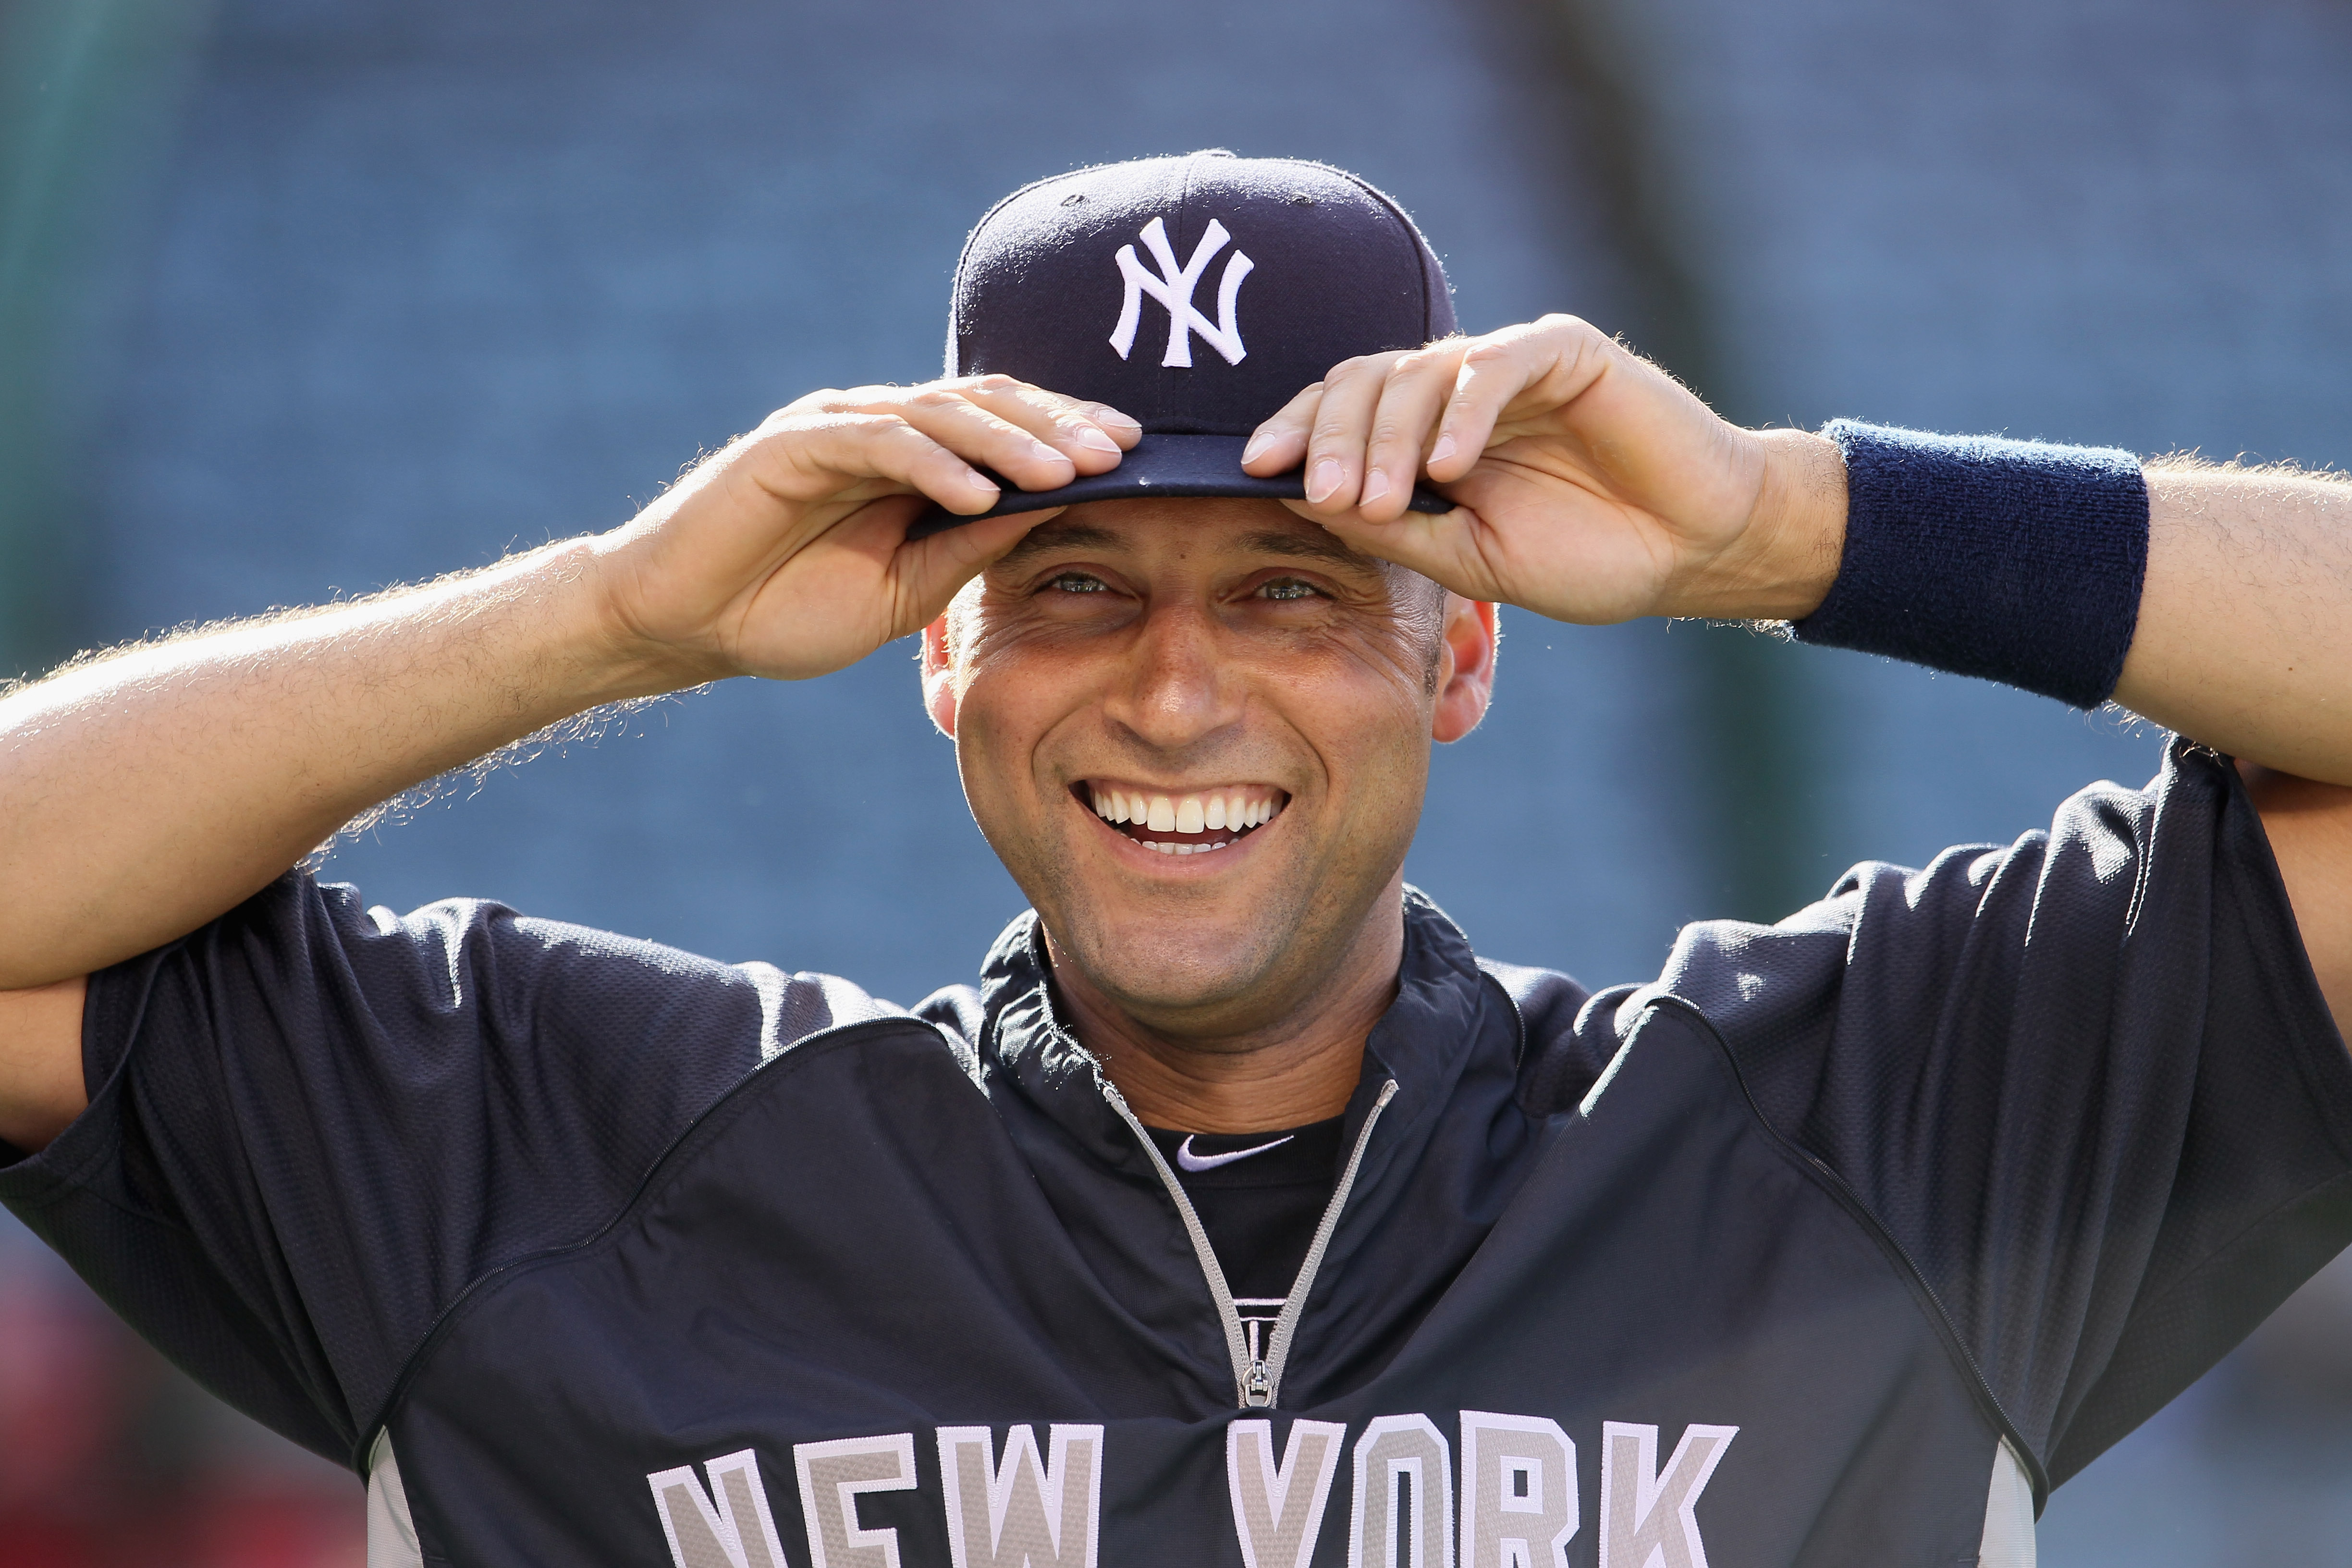 ANAHEIM, CA - JUNE 03:  Derek Jeter #2 of the New York Yankees looks on prior to the start of the game against the Los Angeles Angels of Anaheim at Angel Stadium of Anaheim on June 3, 2011 in Anaheim, California.  (Photo by Jeff Gross/Getty Images)